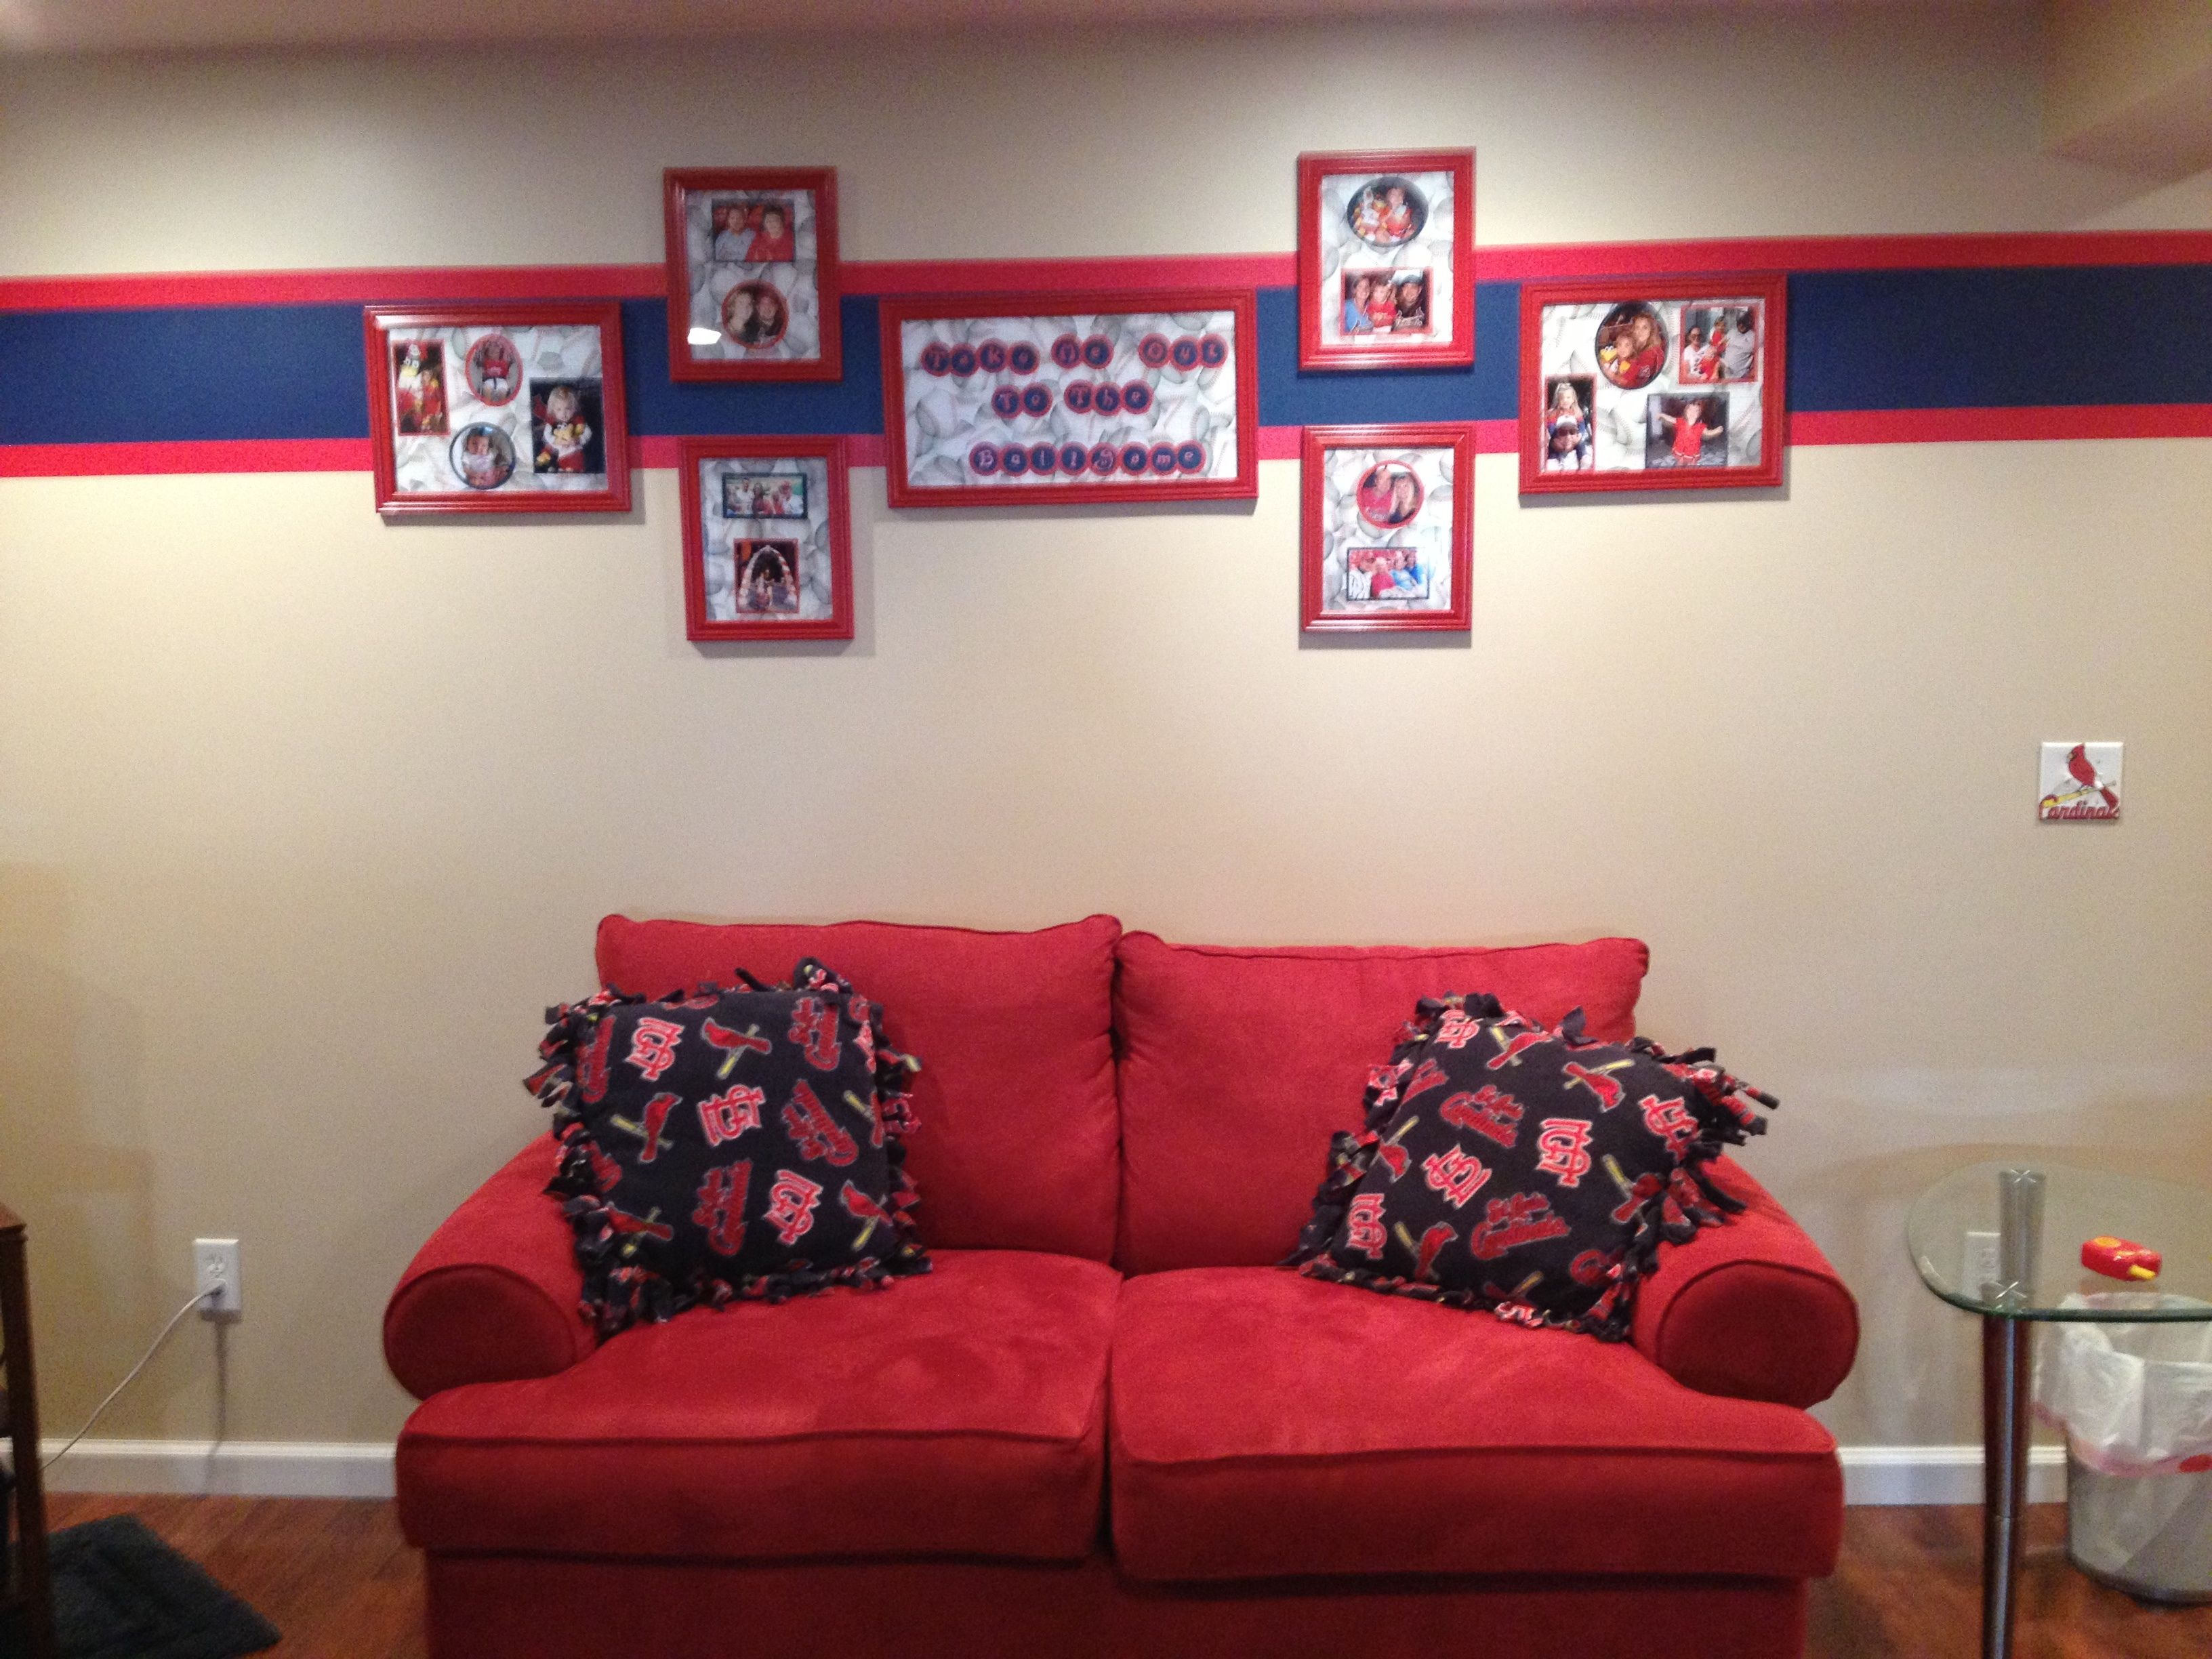 Living Room Borders Wall Border Made With Red Duct Tape Projects Pinterest Duct